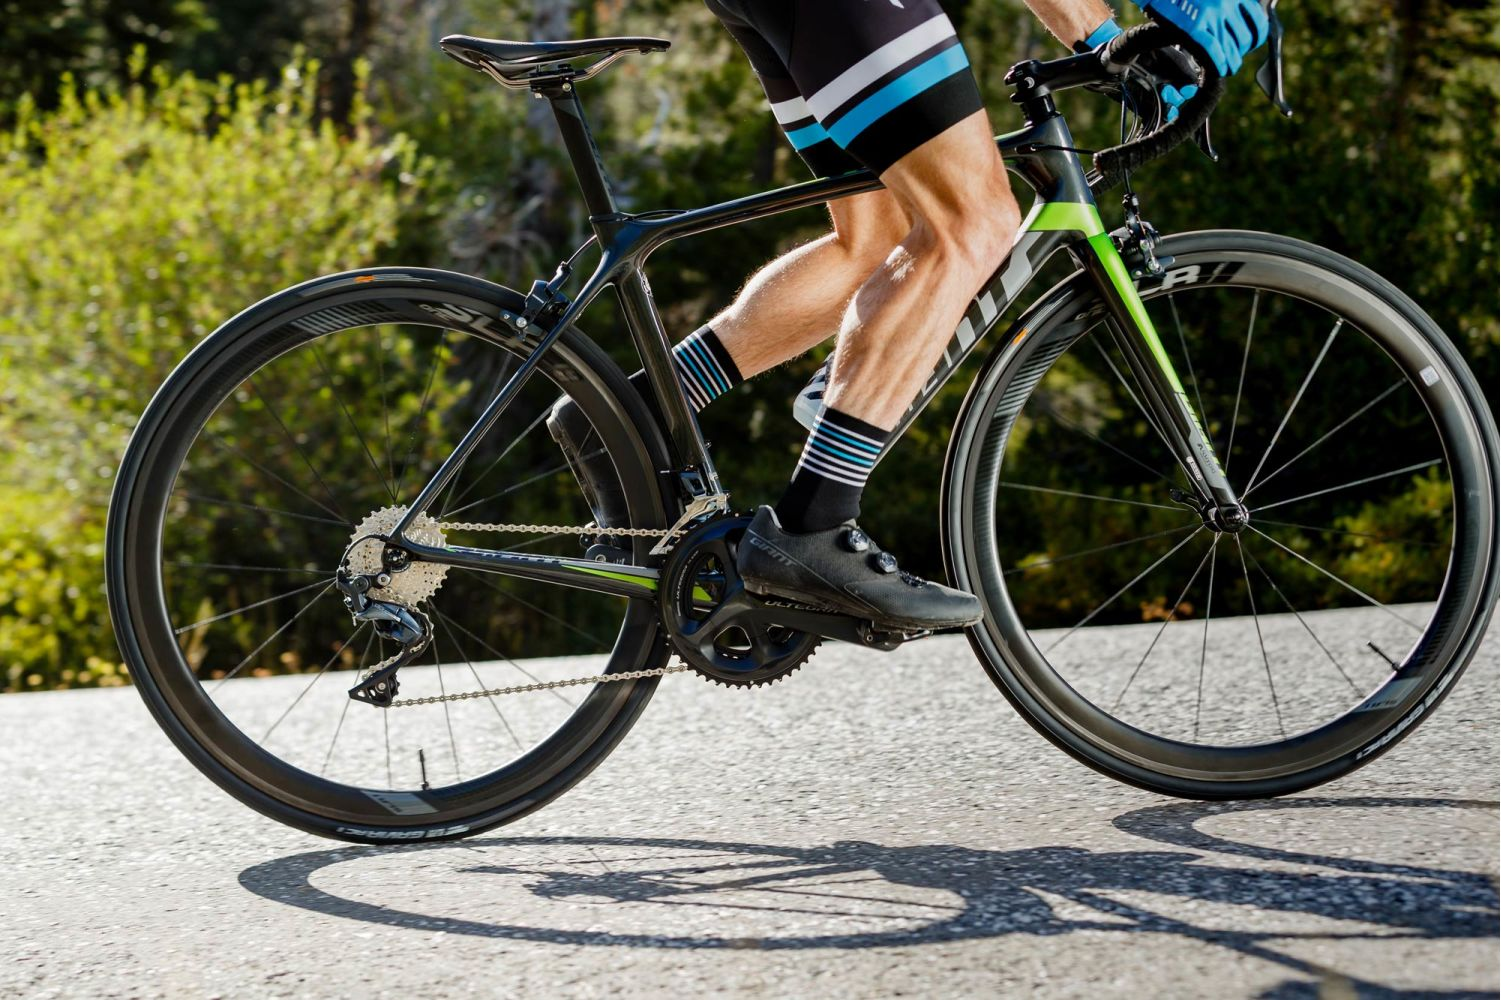 Tcr Advanced Pro 2019 Giant Bicycles United Kingdom Bicycle Lightings Gallery Image